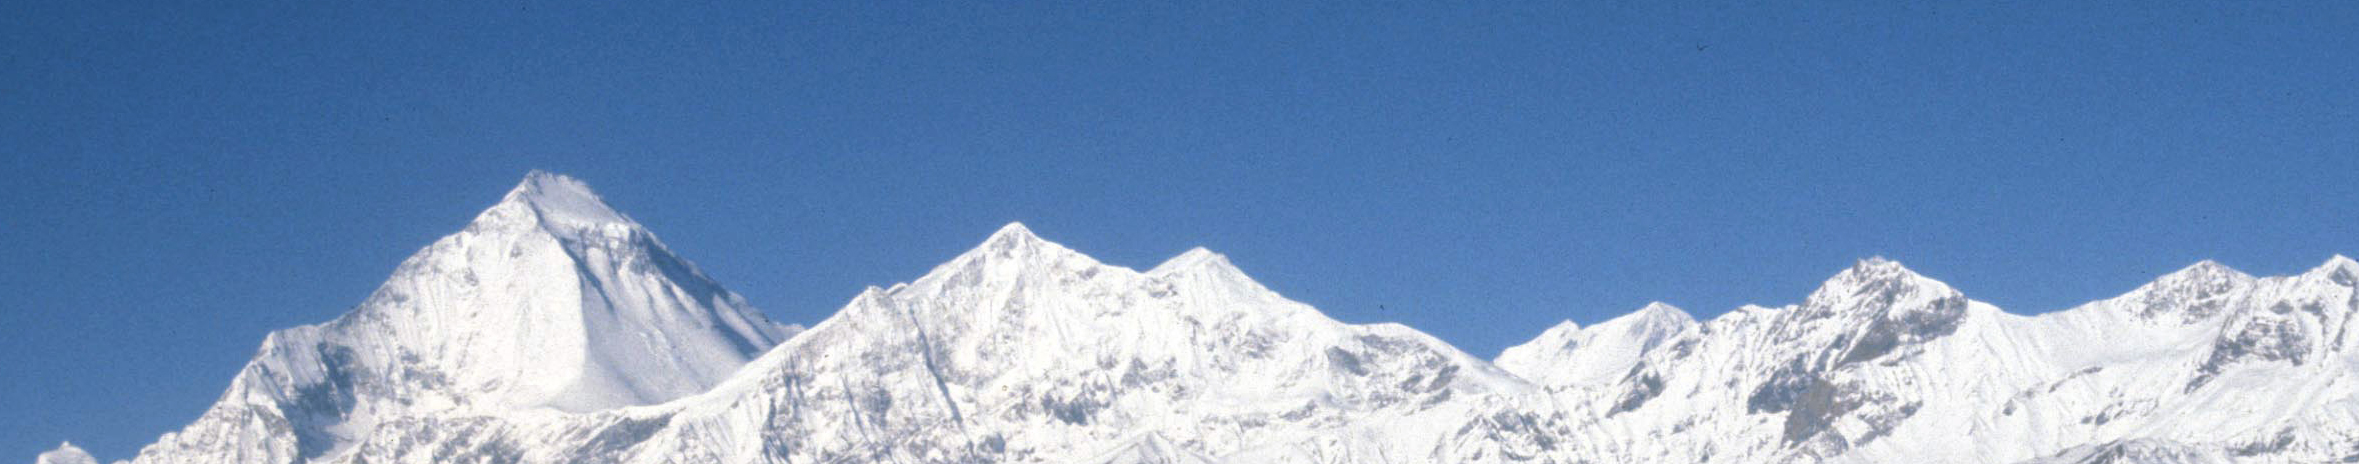 http://www.10system.com/pictures/Himalaya-side.jpg